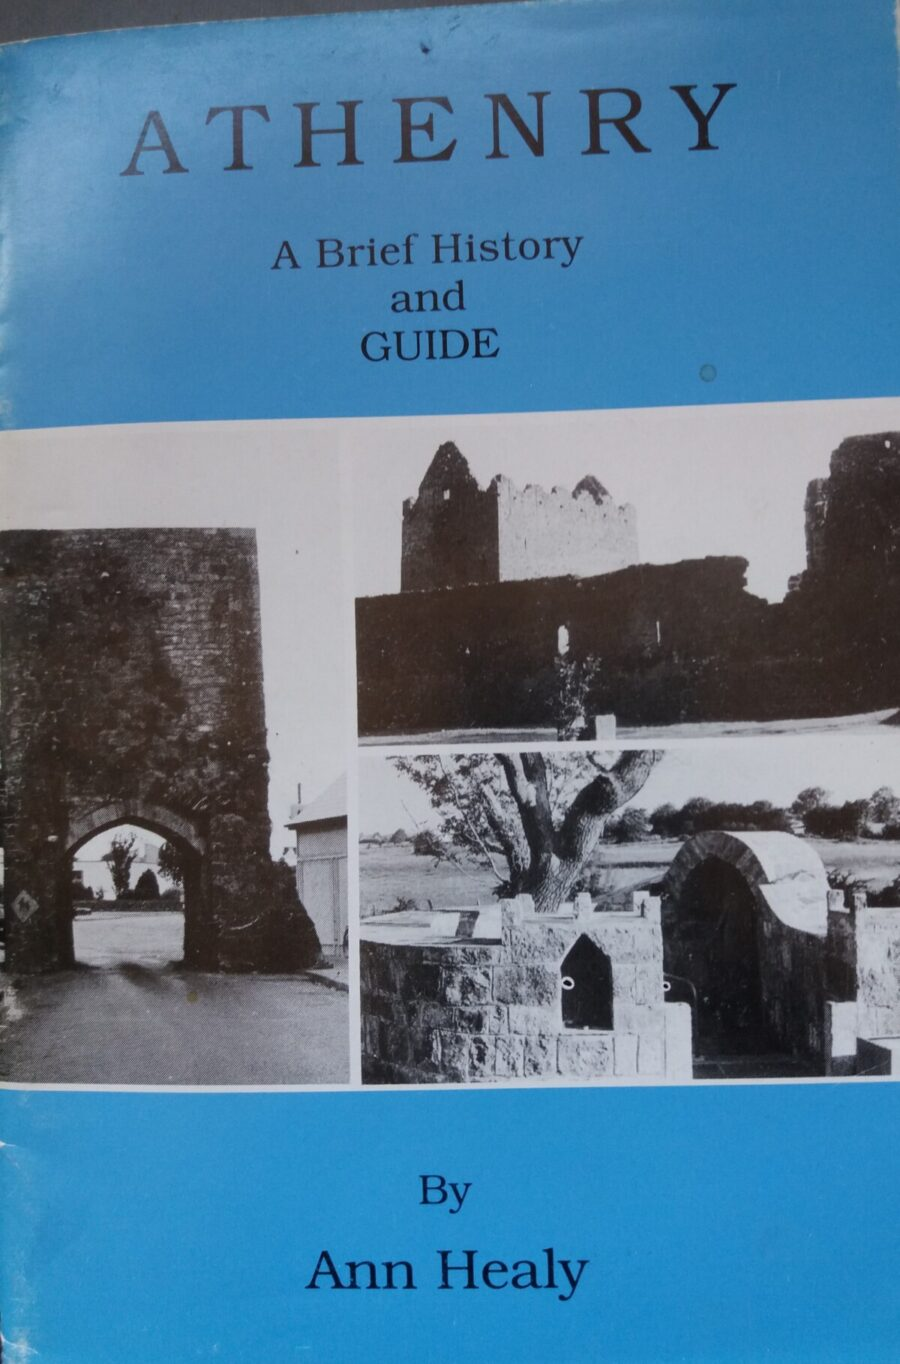 Athenry - A Brief History and Guide